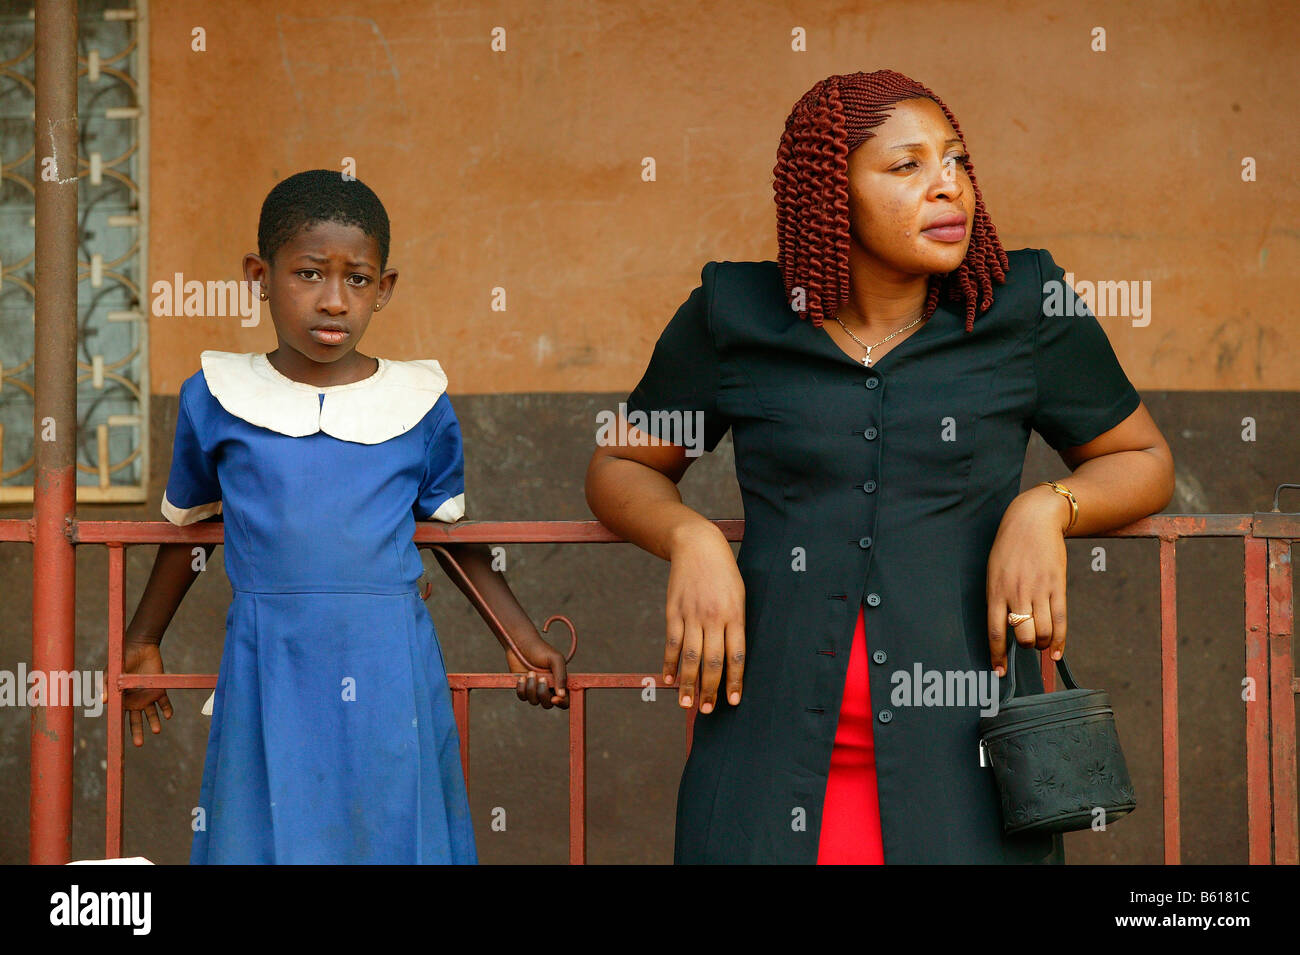 Contemporary African woman standing with a girl in a school uniform, Women's Education Centre, Bamenda, Cameroon, - Stock Image